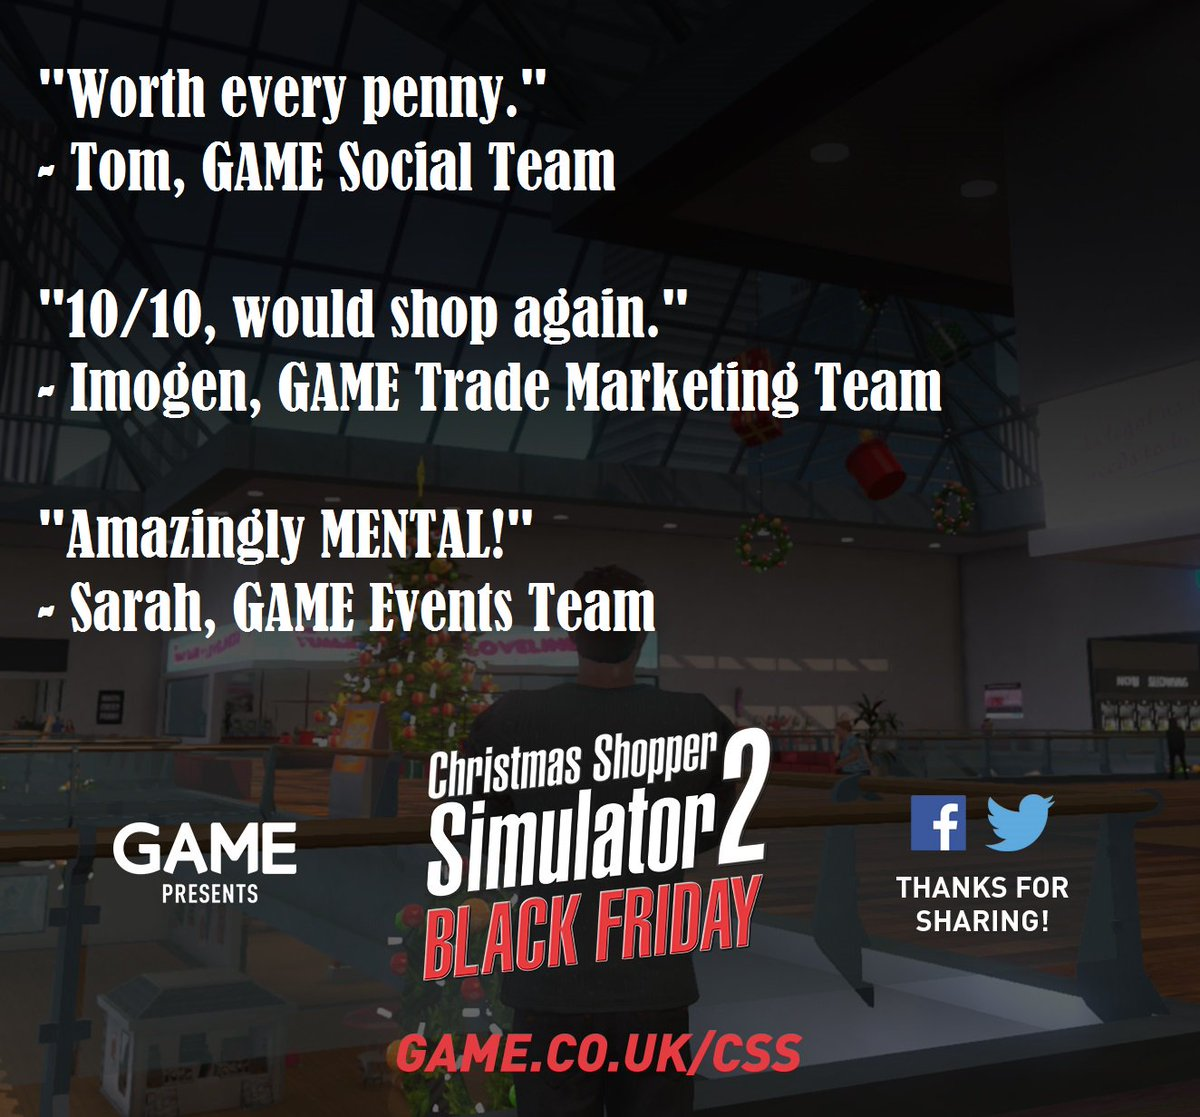 gamecouk on twitter the christmas shopper simulator 2 black friday reviews are in behold their mediocrity gamecss httpstcompwugz37nb